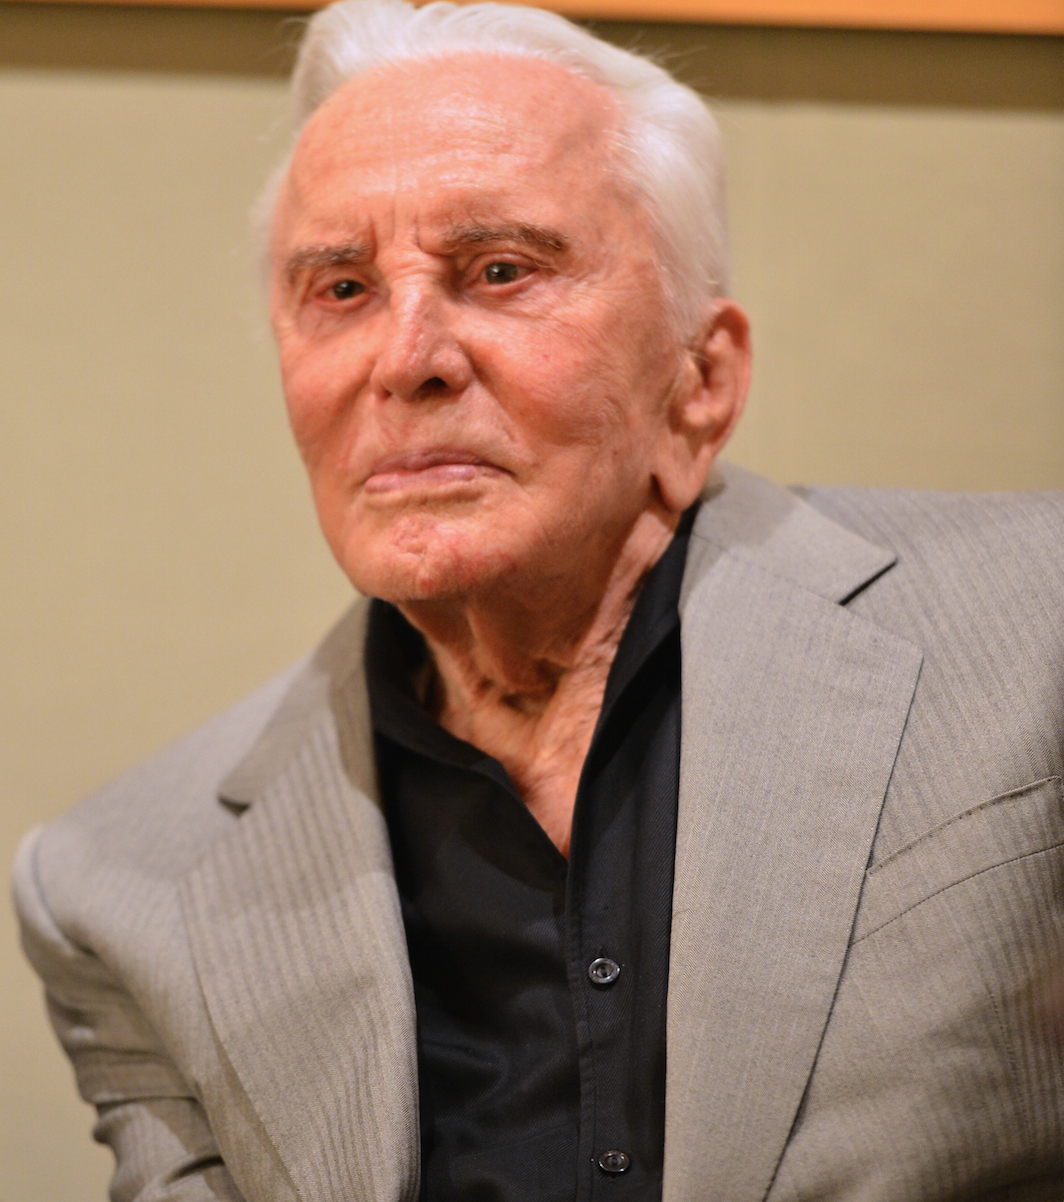 Kirk Douglas Interview - Academy Award Winning Actor - Quotes about ...